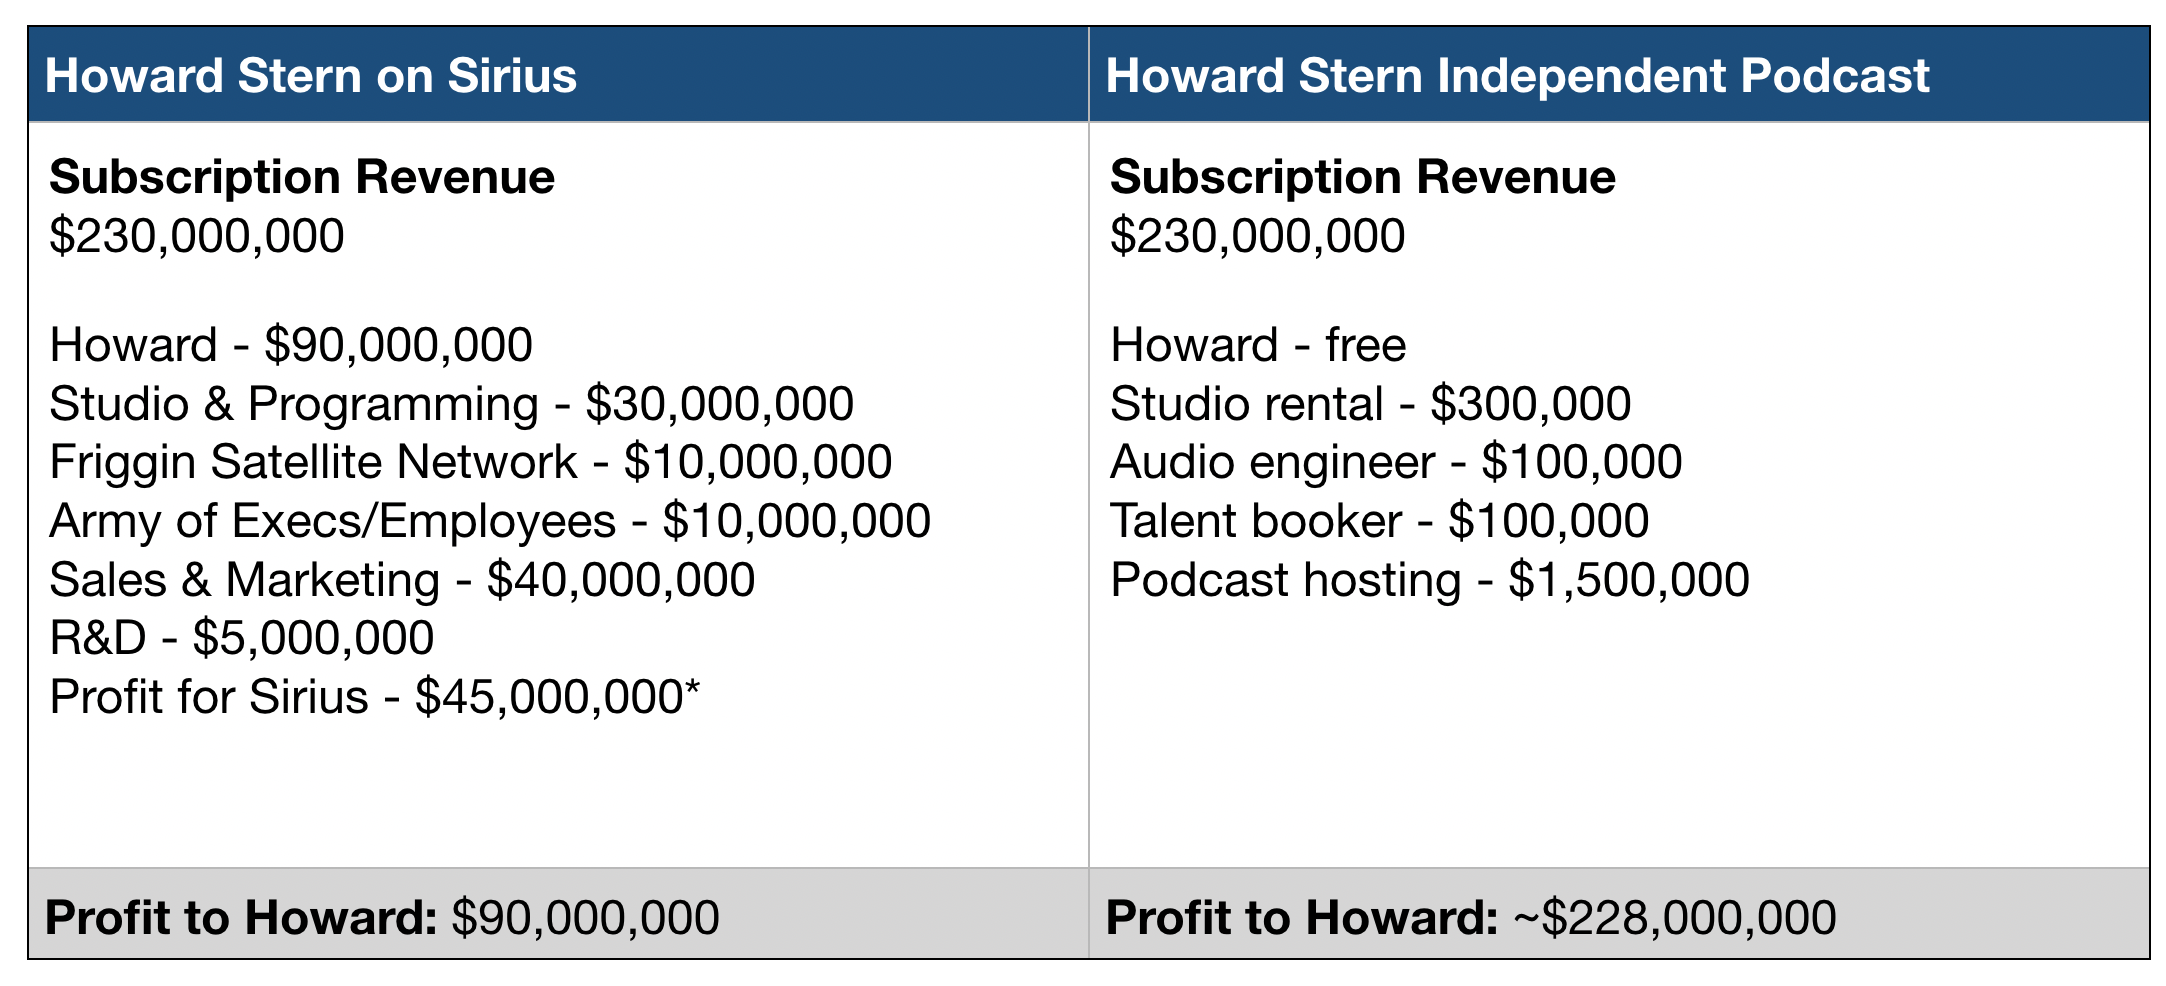 Chart giving approximate revenue of Howard Stern on Sirius compared to independent podcast